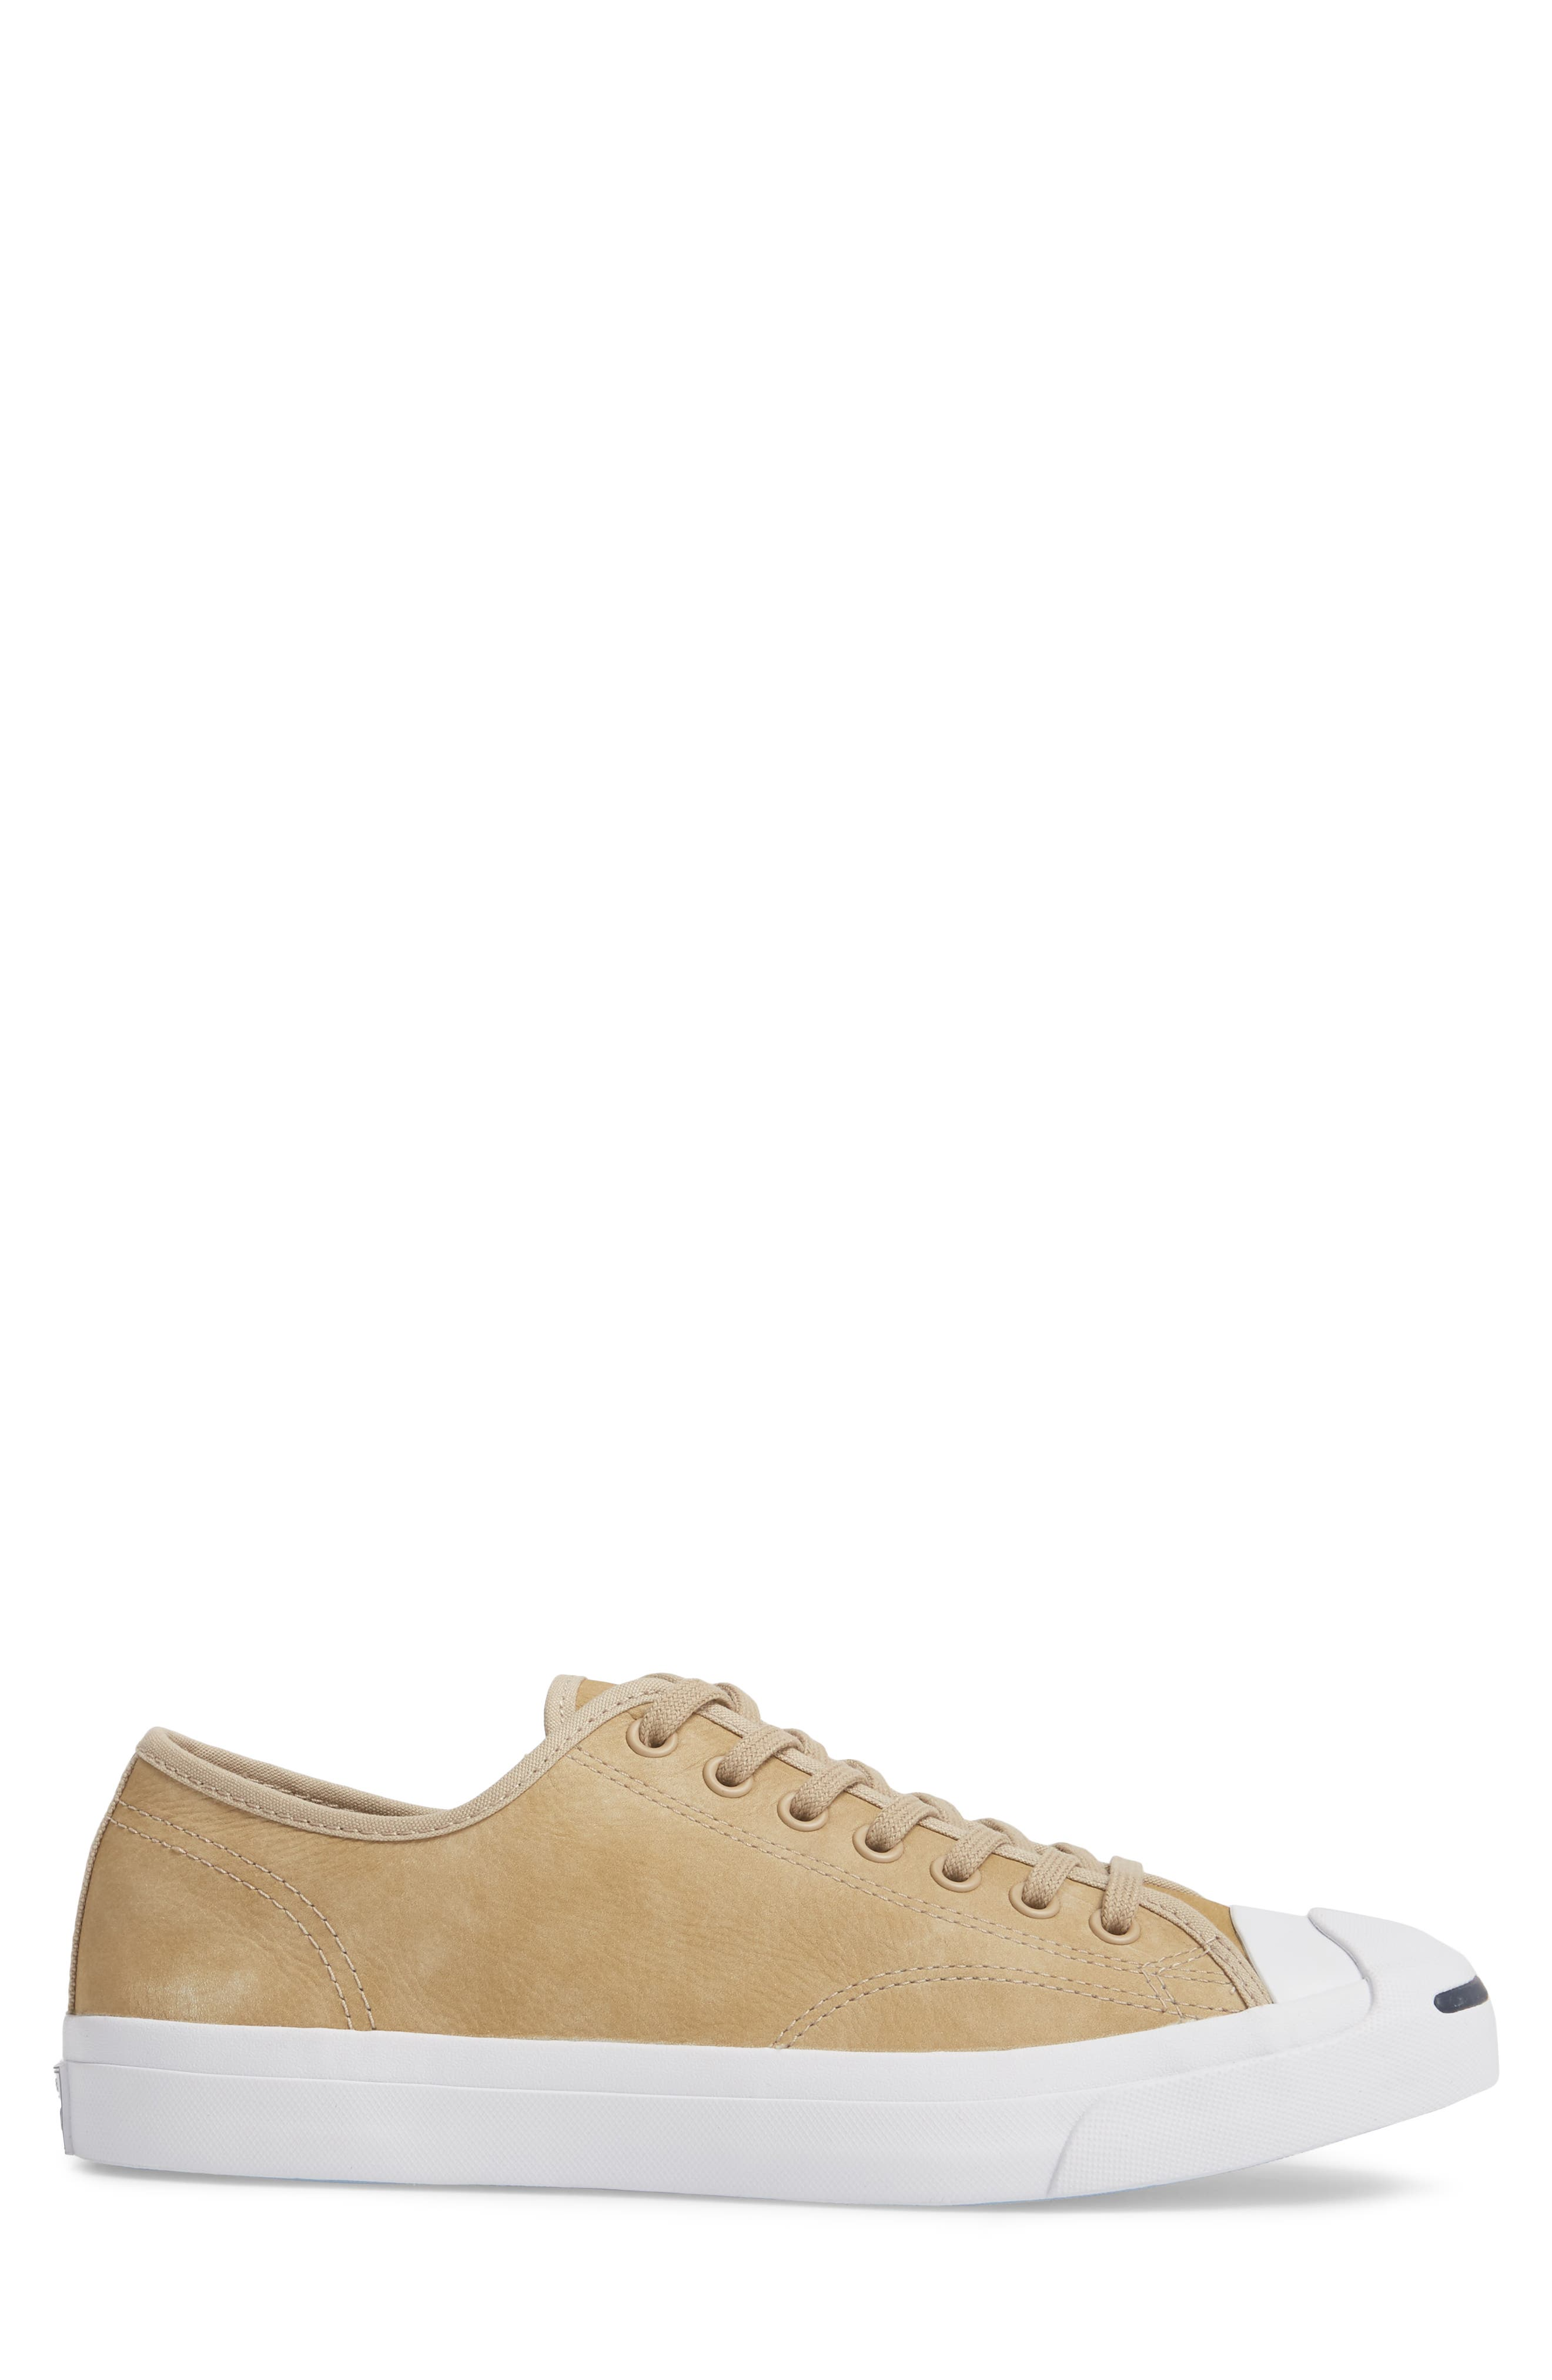 Alternate Image 3  - Converse 'Jack Purcell - Jack' Sneaker (Men)